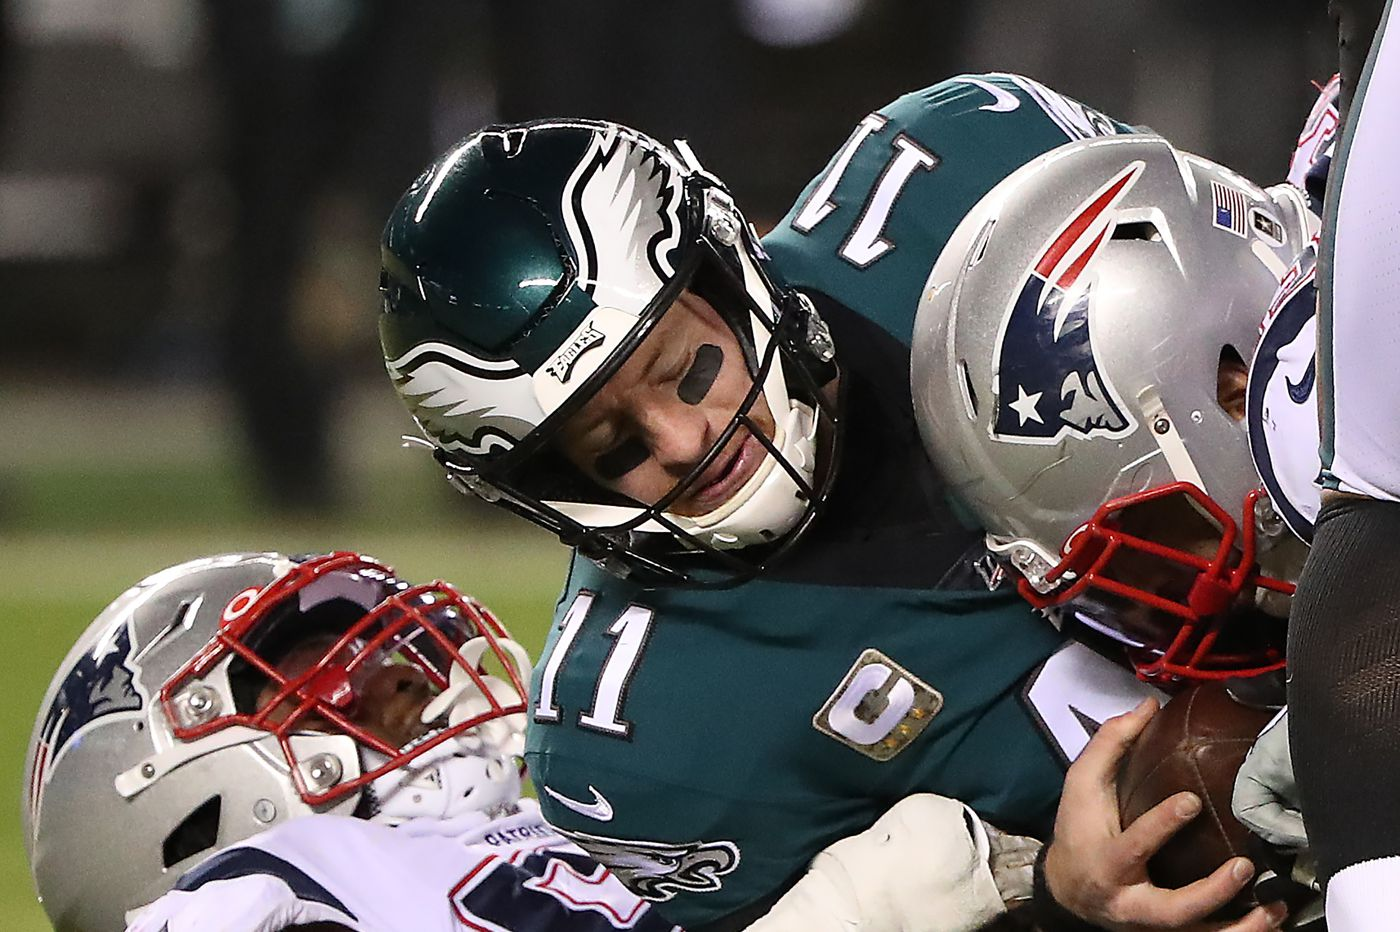 Valid excuses aside, Carson Wentz still came up short in Eagles' loss to the Patriots | Jeff McLane